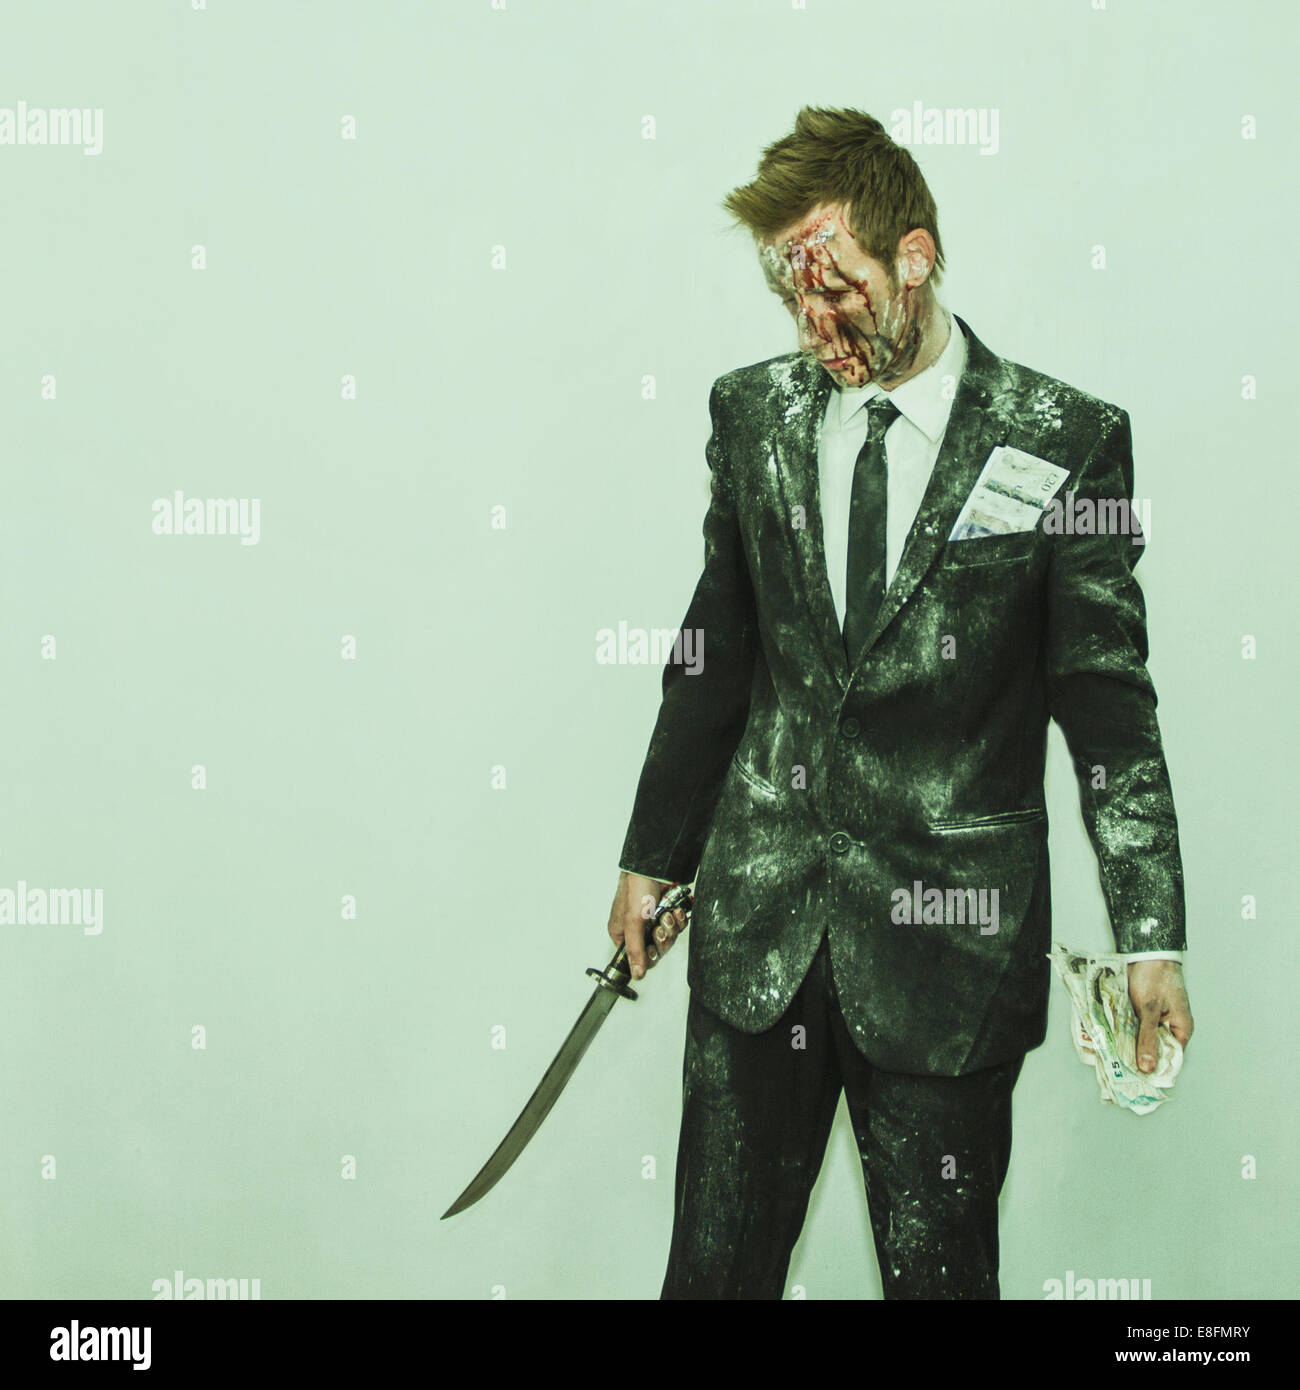 Man in suit holing sword and money - Stock Image